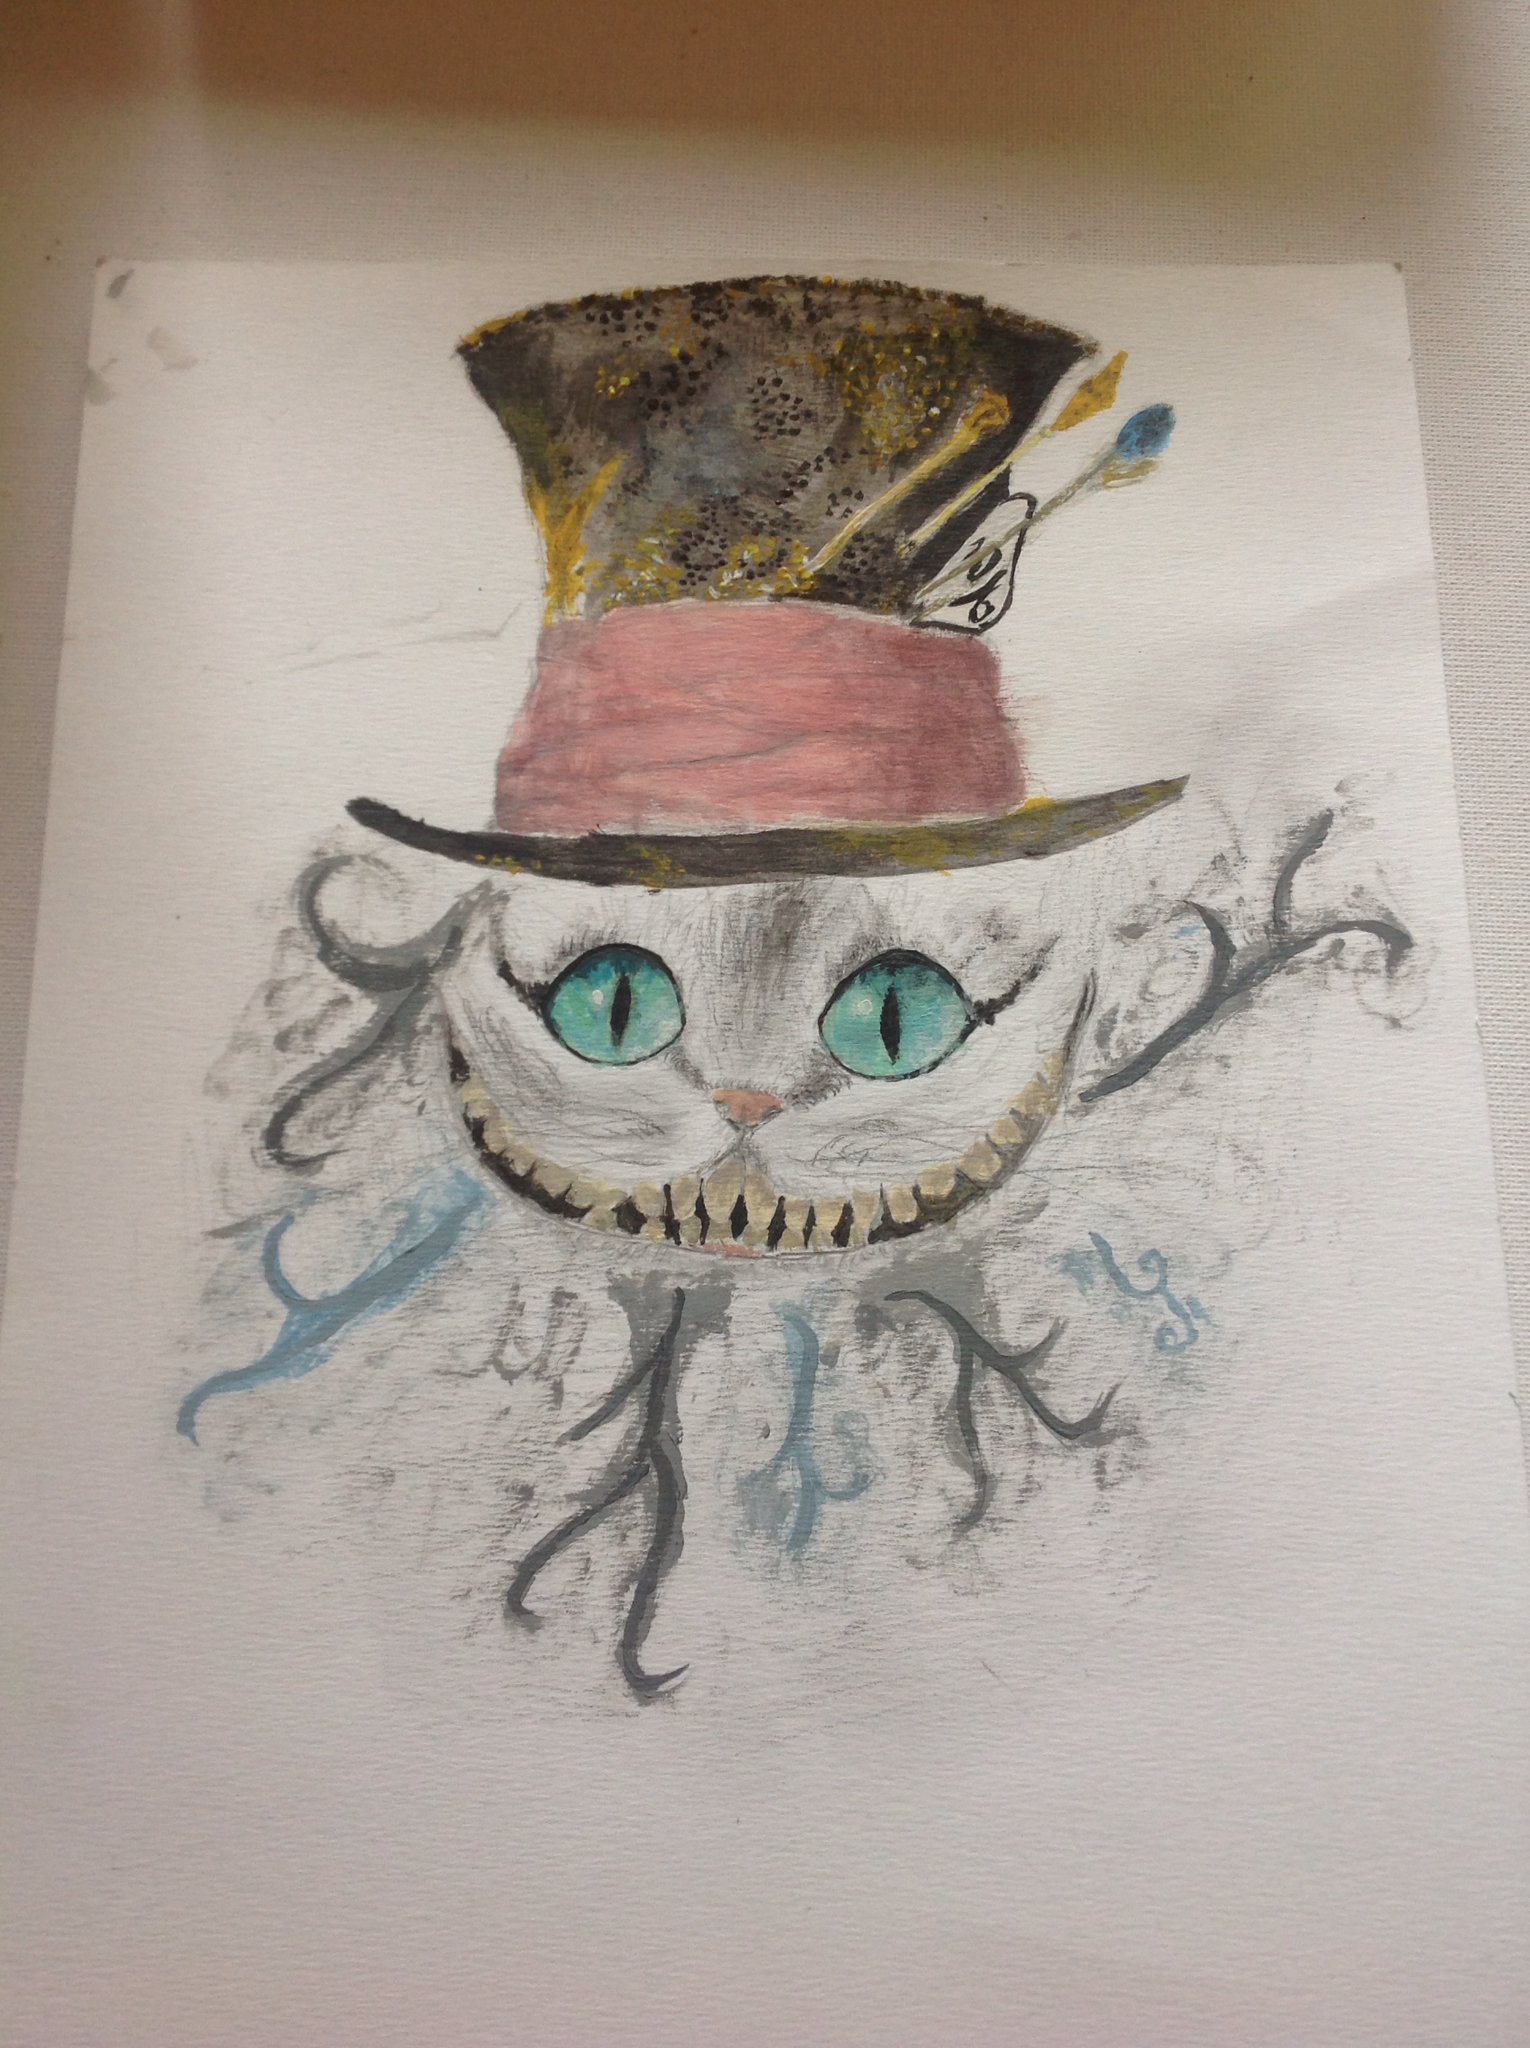 Drawn cheshire cat mad hatter Mad candles My drawing drawing